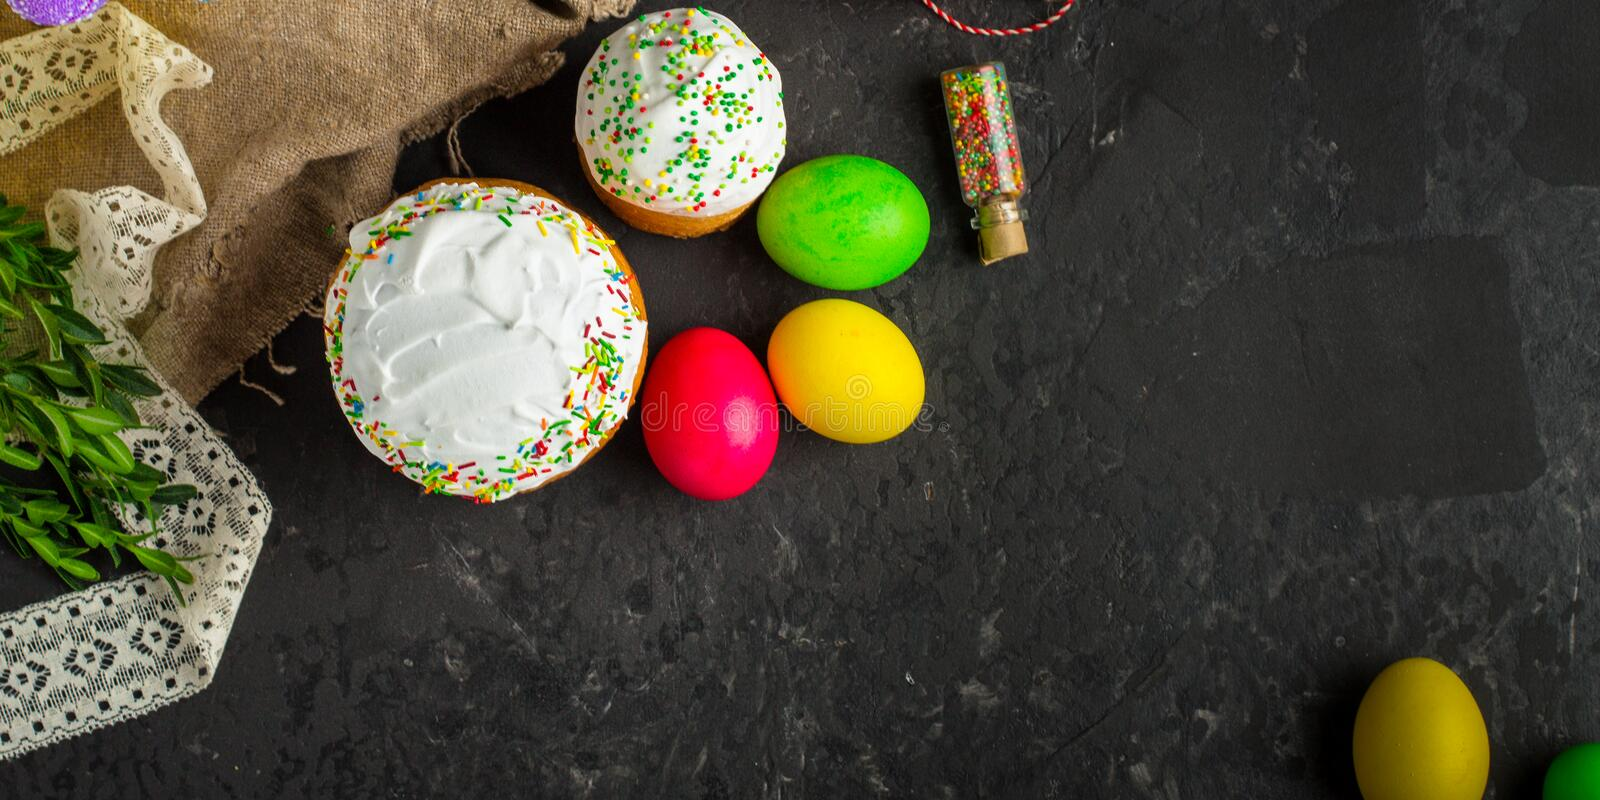 Easter cake and Easter eggs, traditional holiday attributes Happy Easter!. food background. top view. Easter cake and Easter eggs, traditional holiday attributes royalty free stock photos